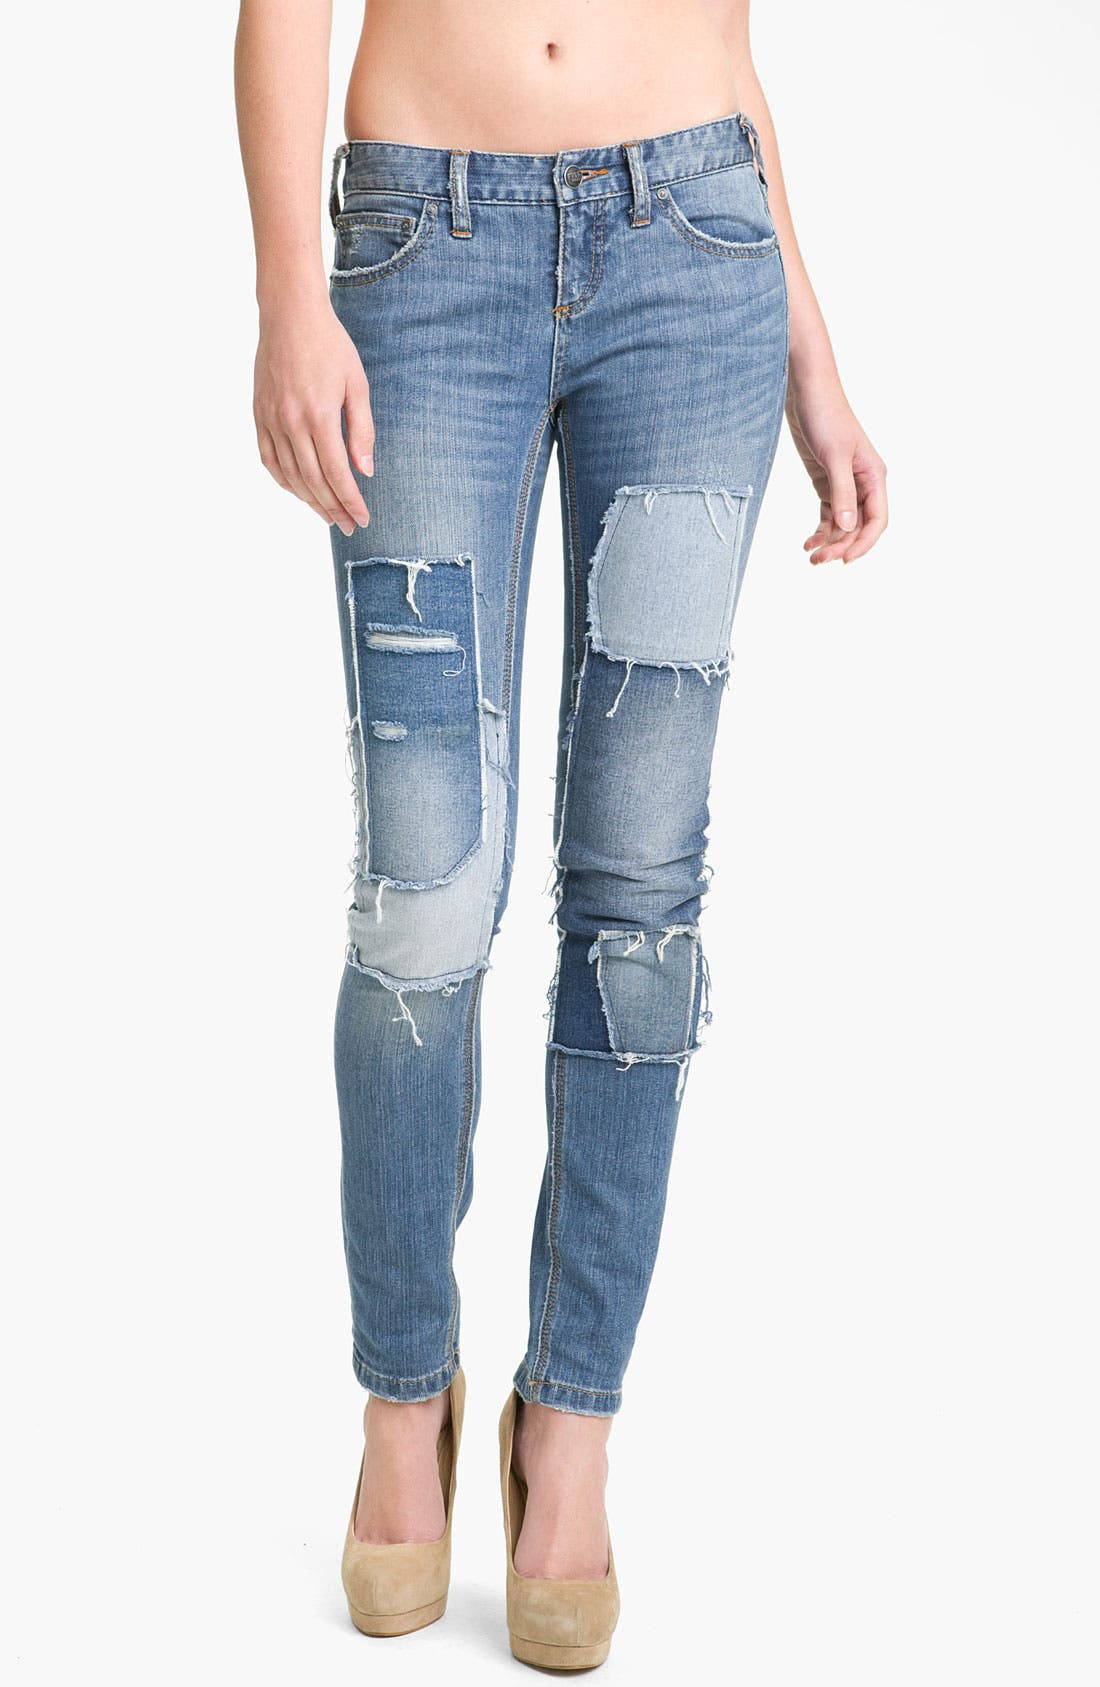 Alternate Image 1 Selected - Free People Patched Skinny Jeans (Hillside)